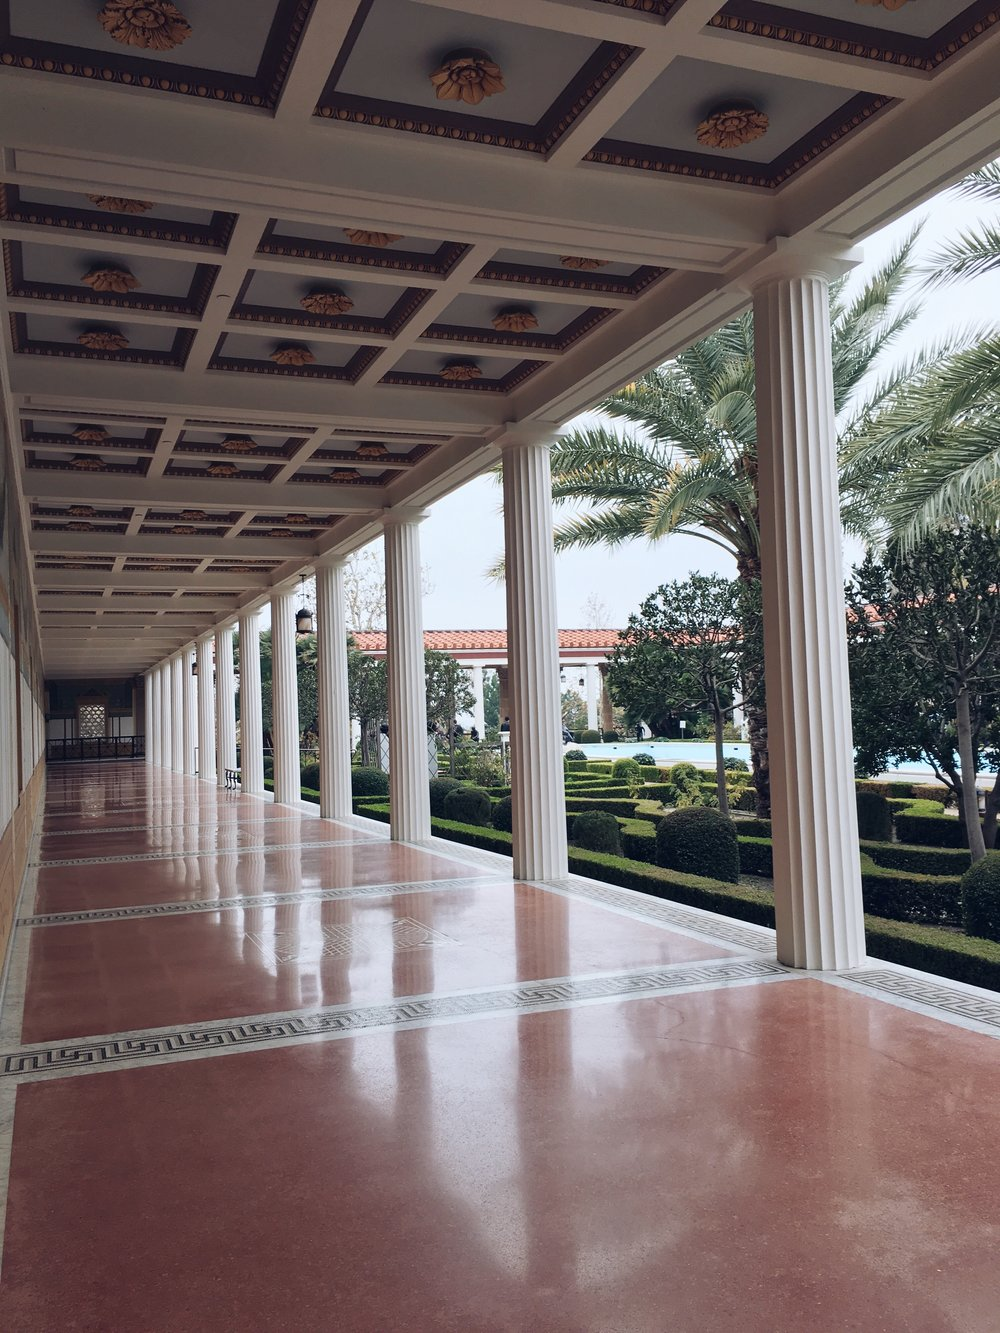 Columns at the Getty Villa